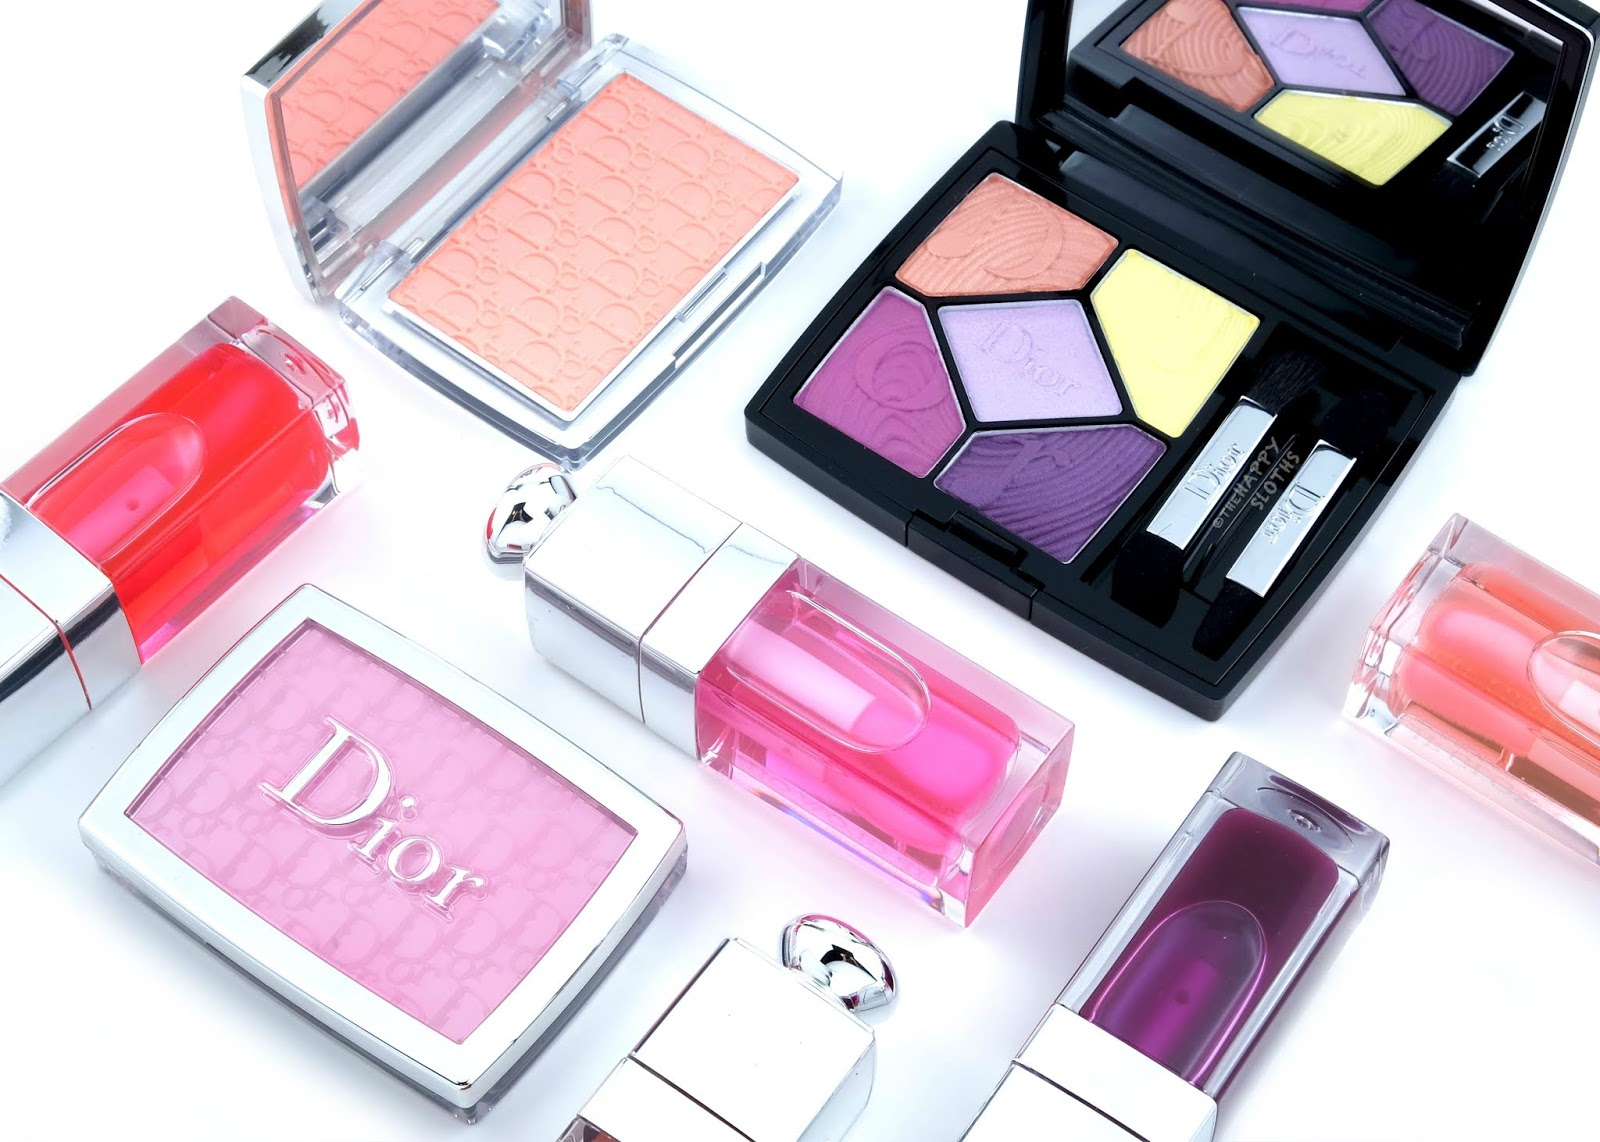 Dior | Spring 2020 Glow Vibes Collection: Review and Swatches